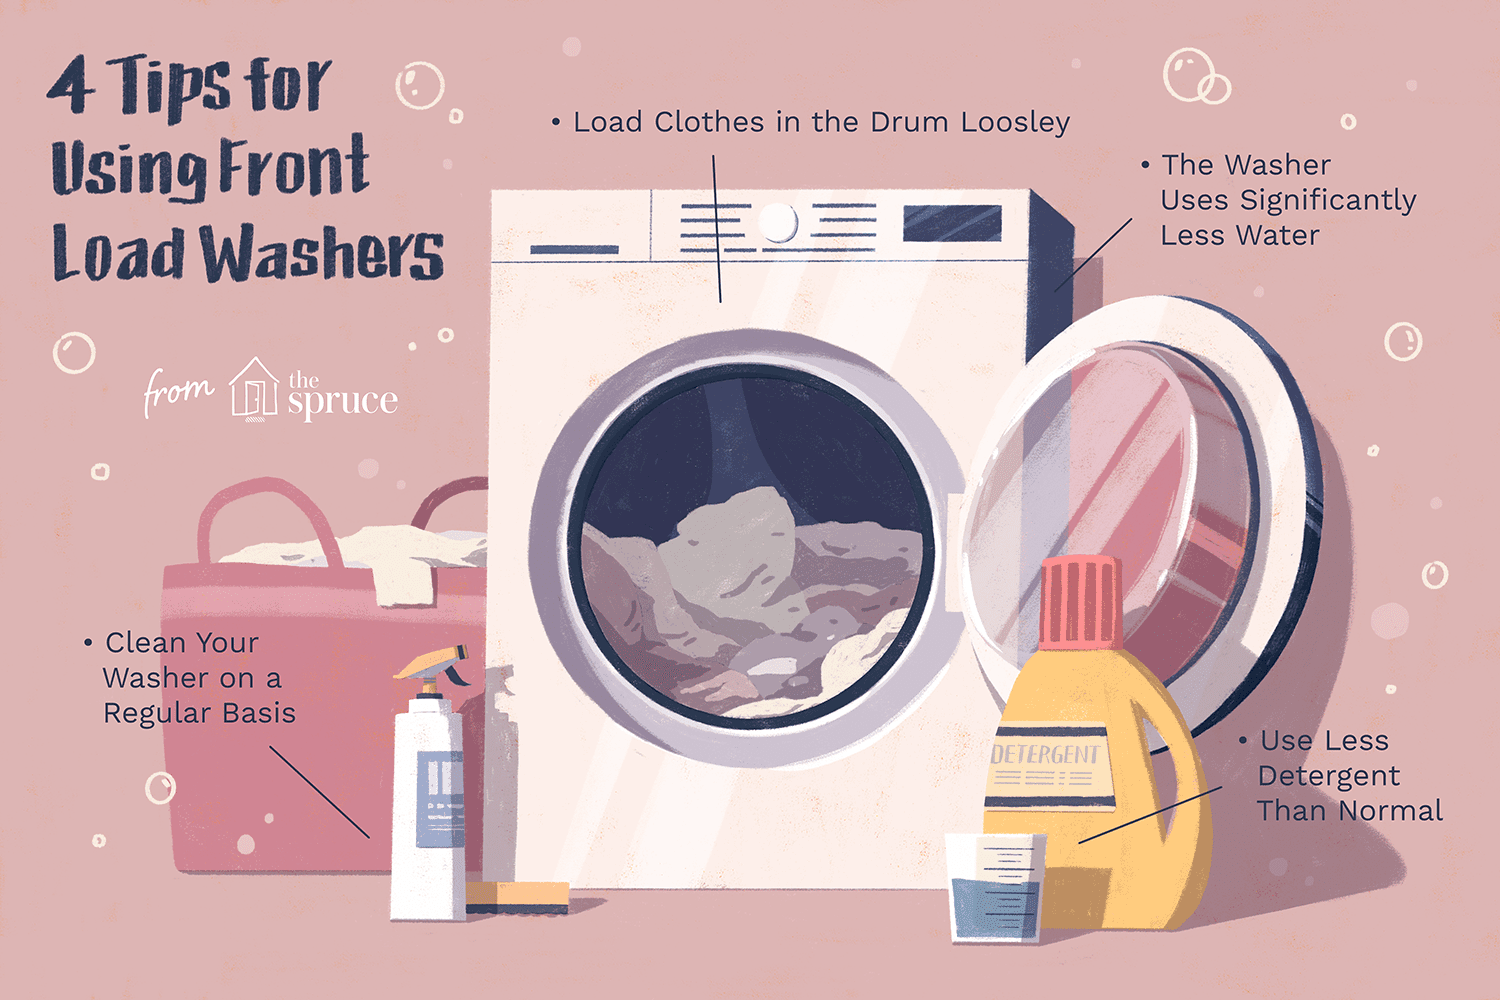 How to Use a Front Load Washer Correctly